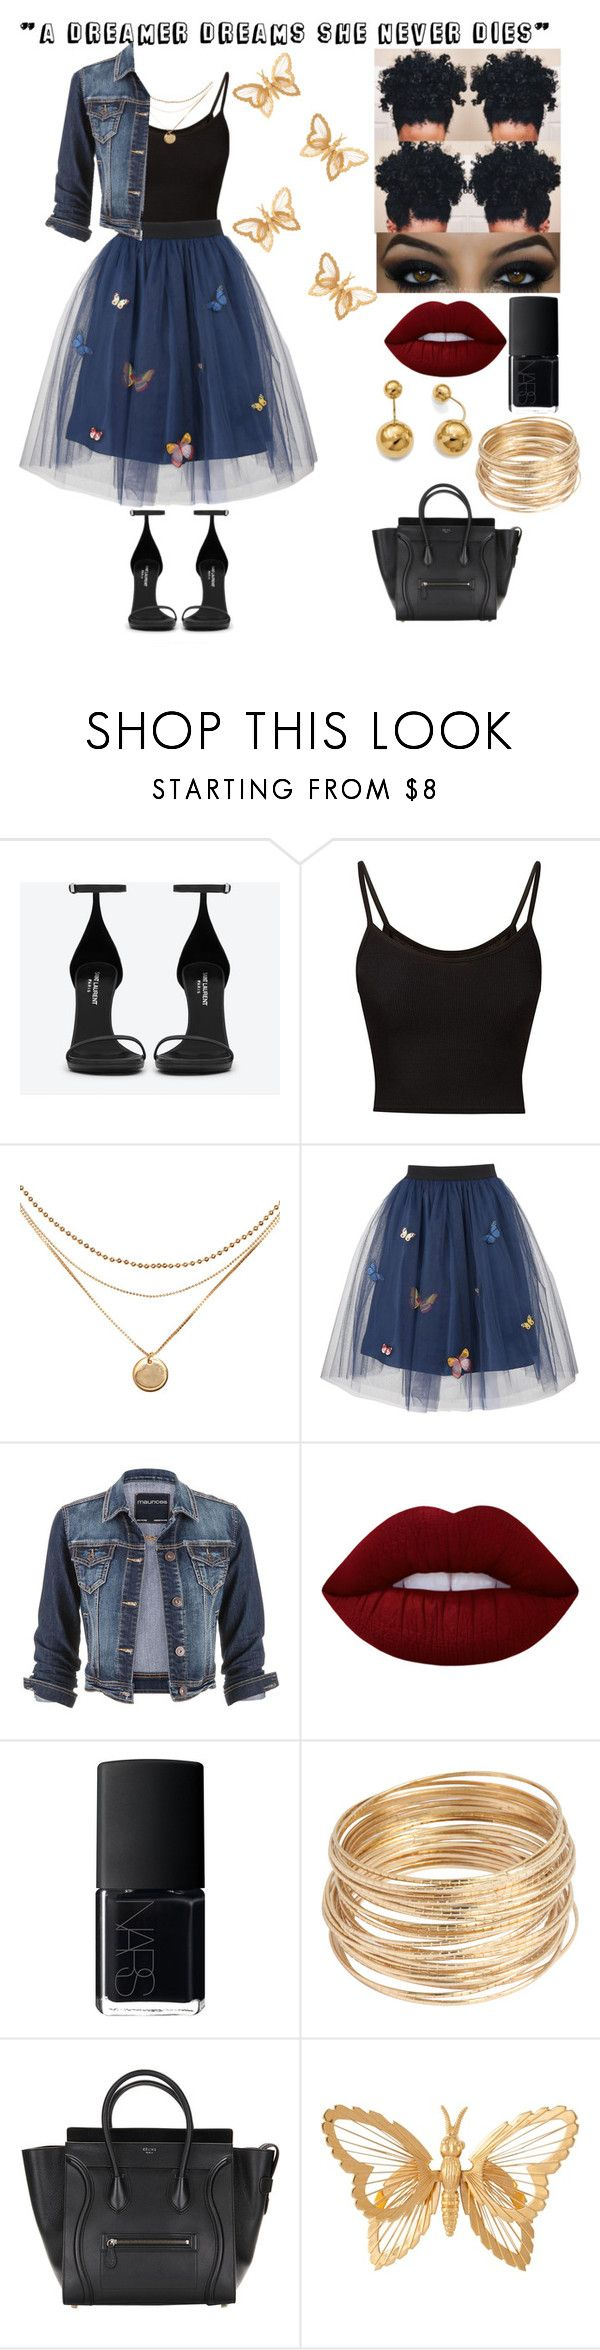 """"""" A Dreamer Dreams She Never Dies"""" by life-as-bri ❤ liked on Polyvore featuring Yves Saint Laurent, George J. Love, maurices, Lime Crime, NARS Cosmetics, Susan Caplan Vintage and Allurez"""